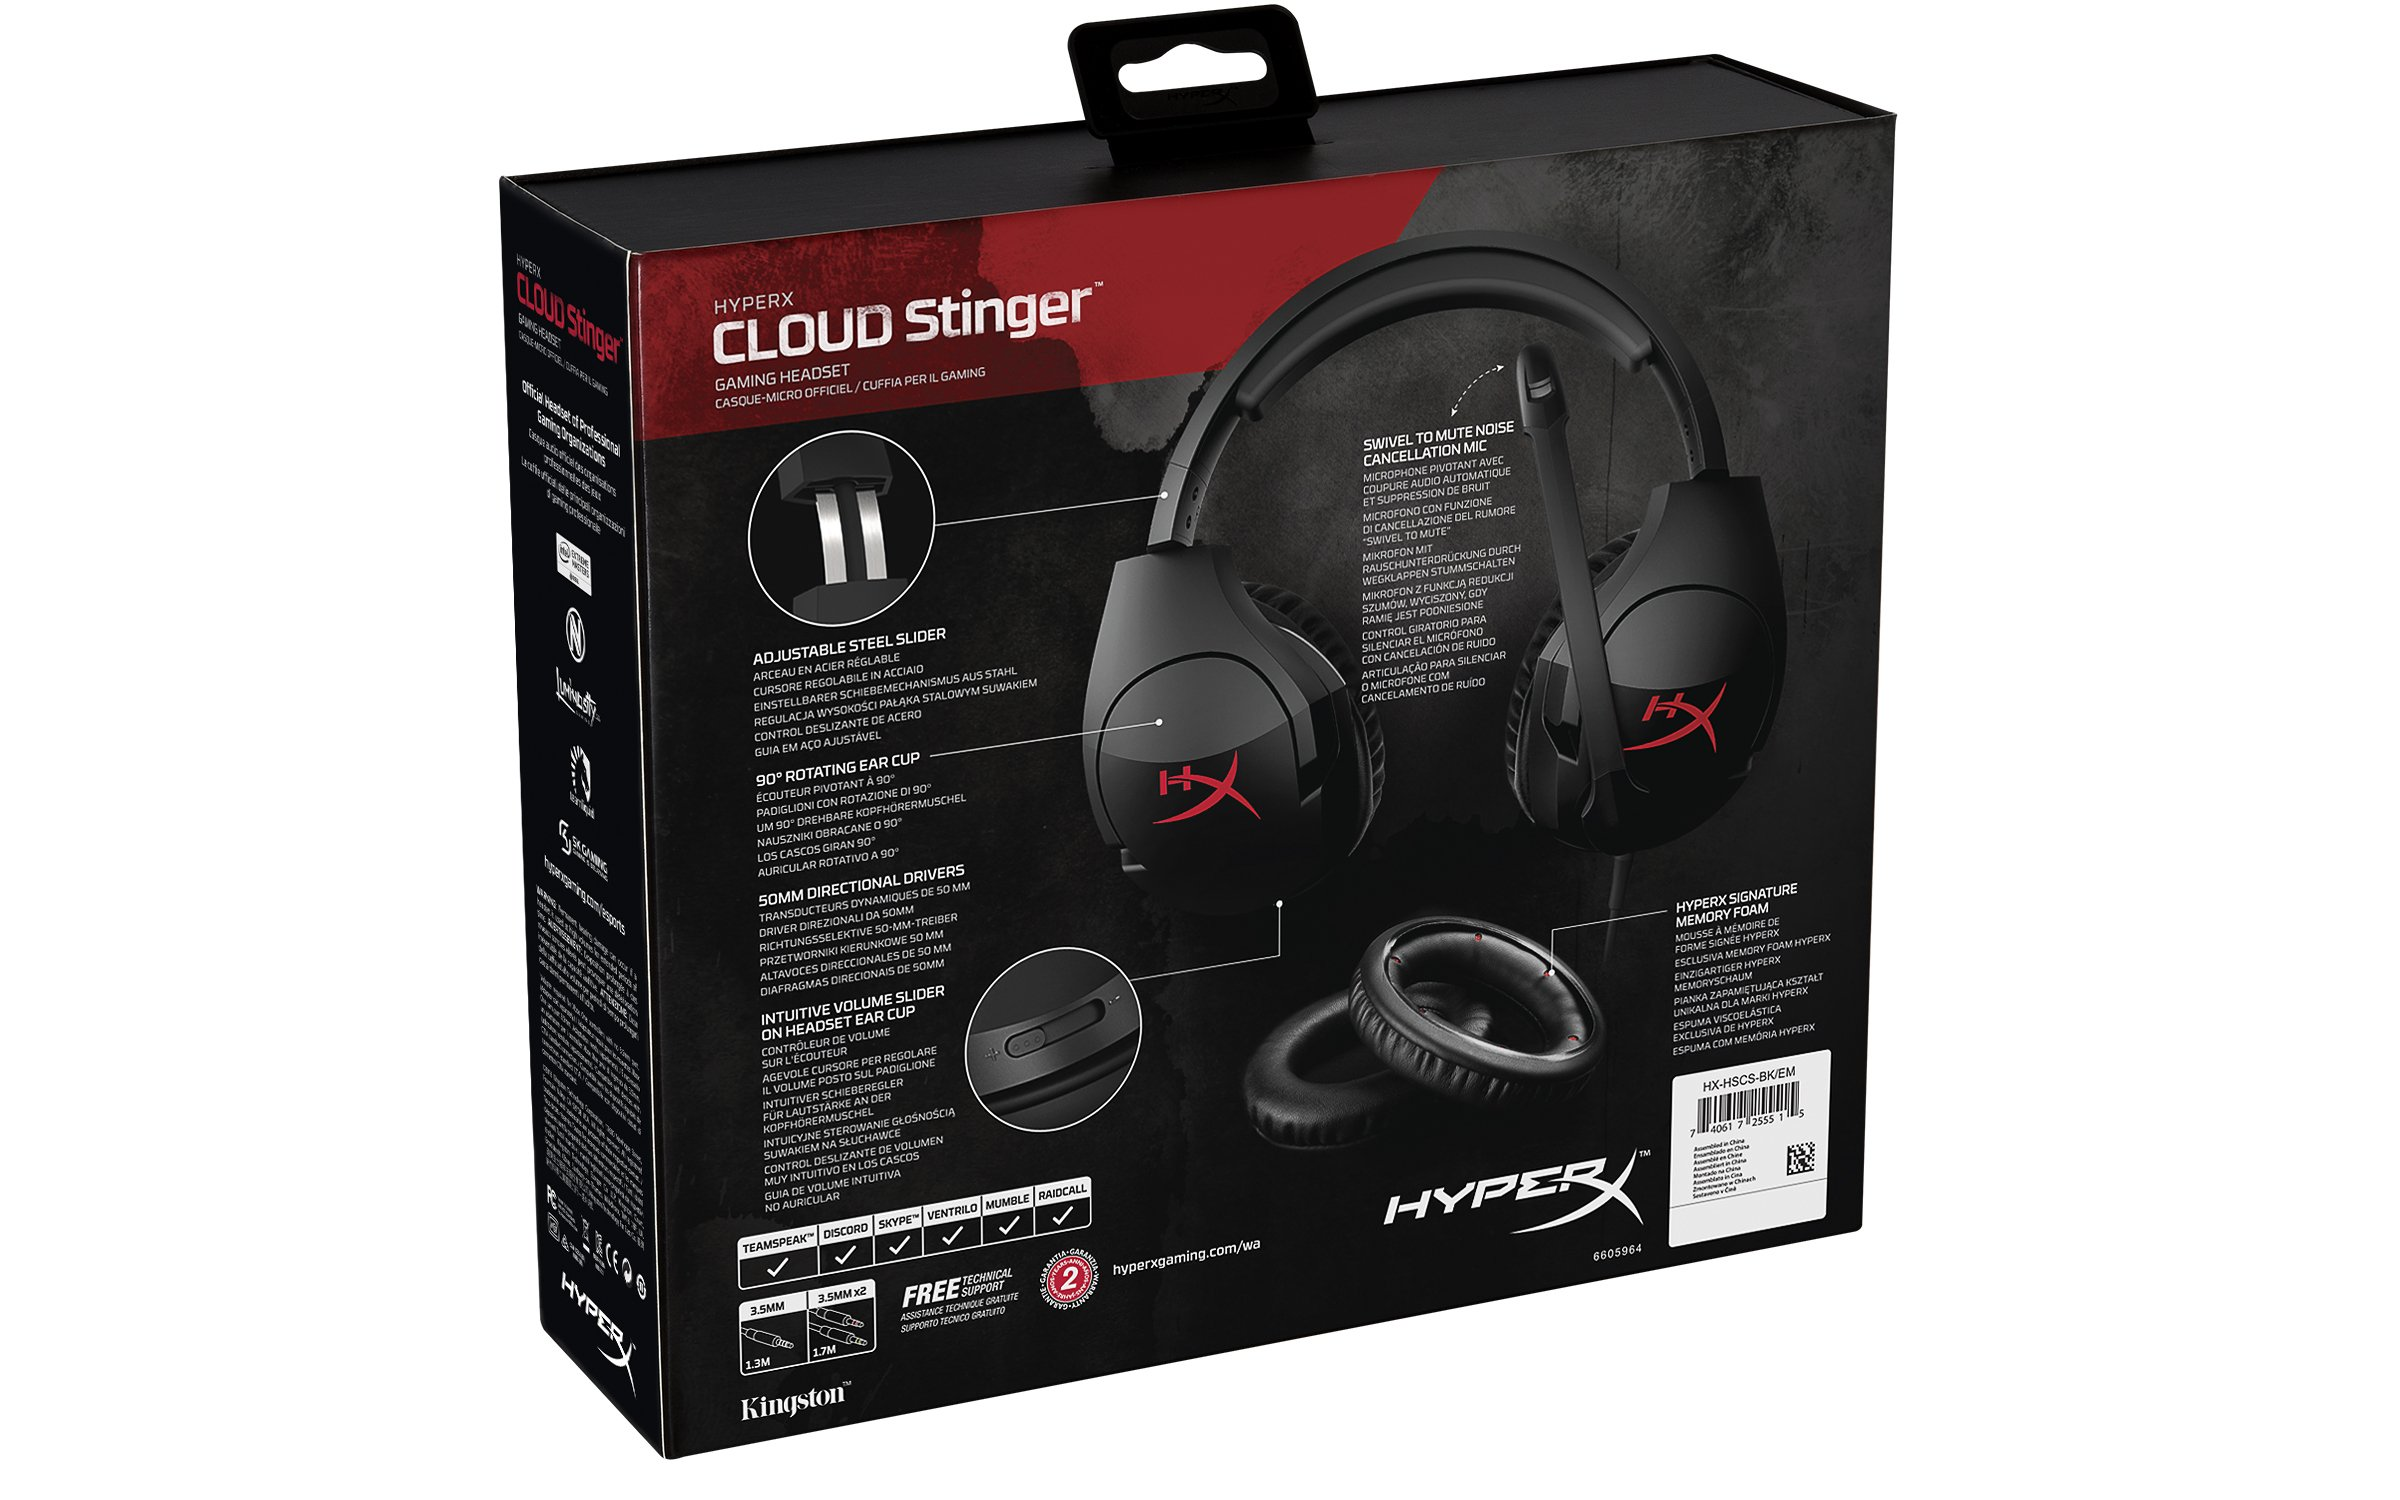 HyperX Cloud Stinger Headphone Gaming Headset With Mic For PC PS4 Xbox one, Kingston, 10 x 20 x 10 cm, Black